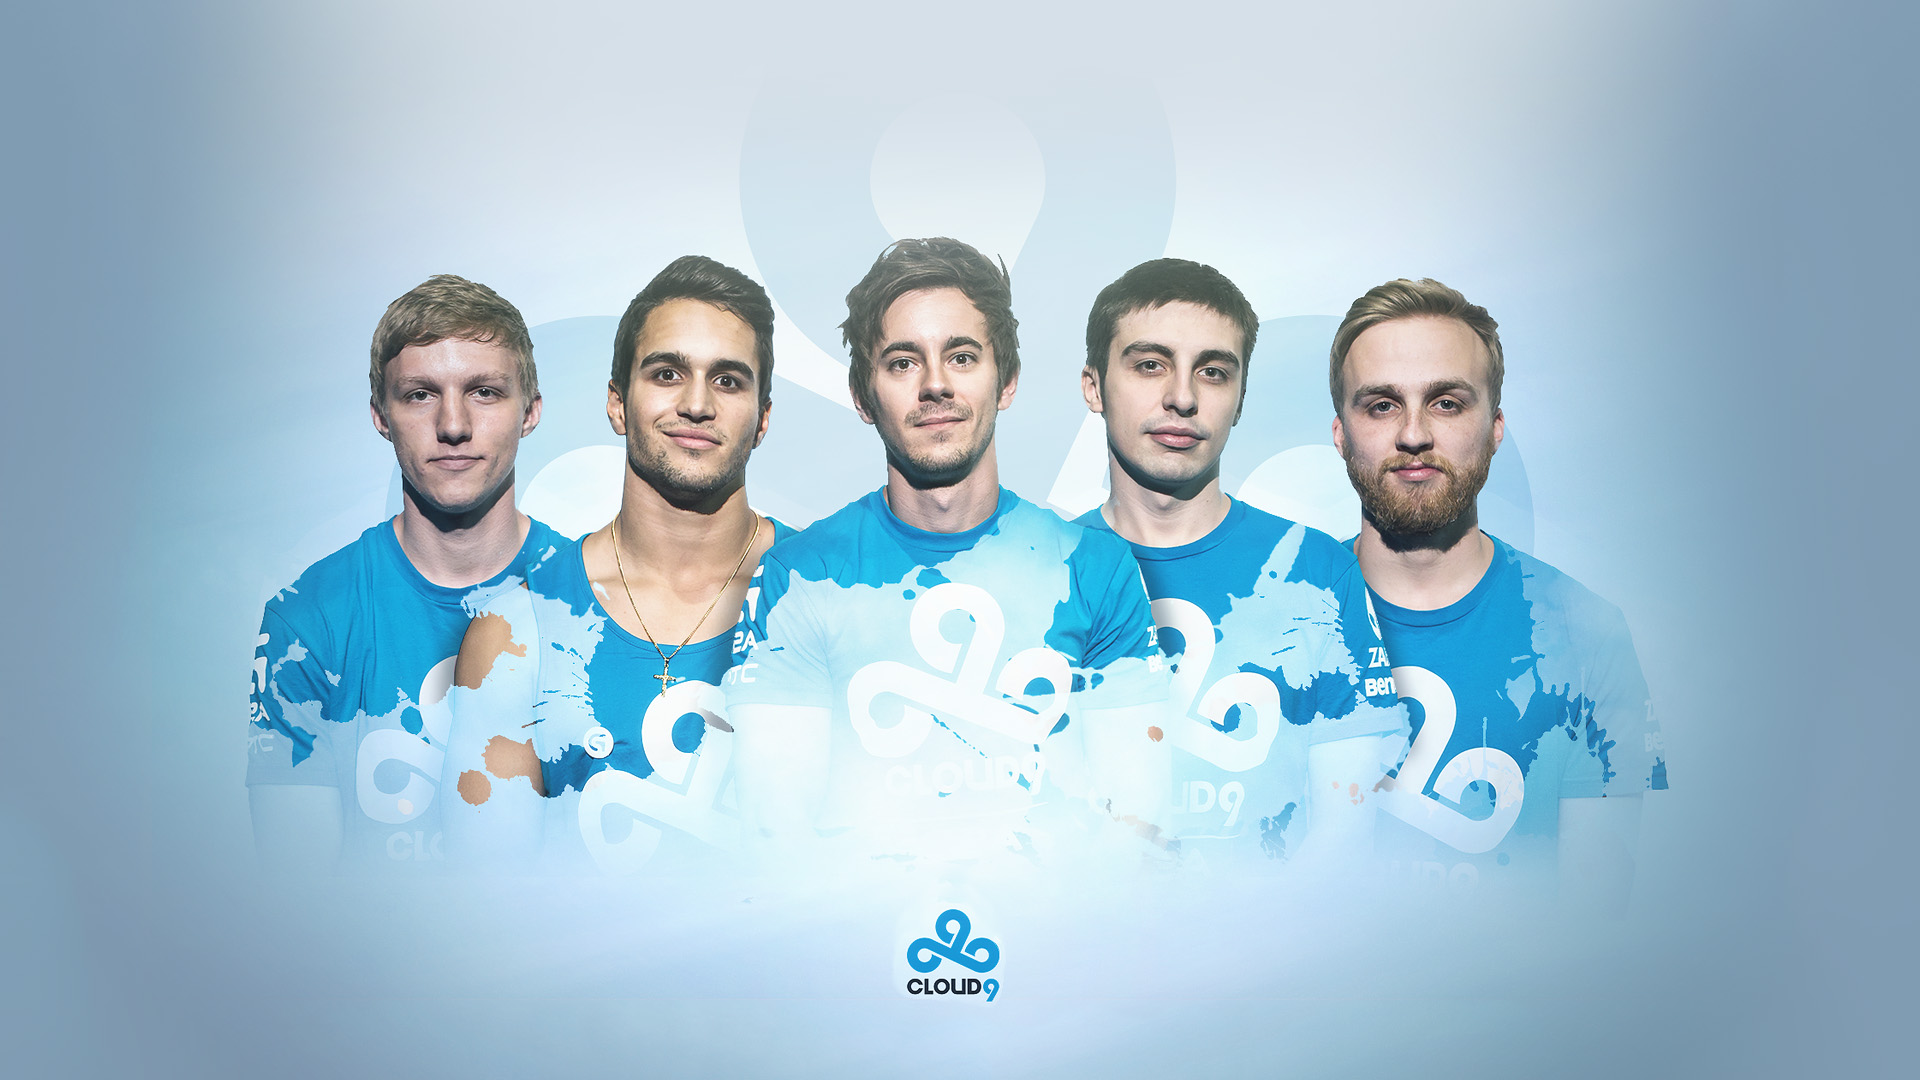 Build Your Home Online 25 Cloud9 Wallpapers Bc Gb